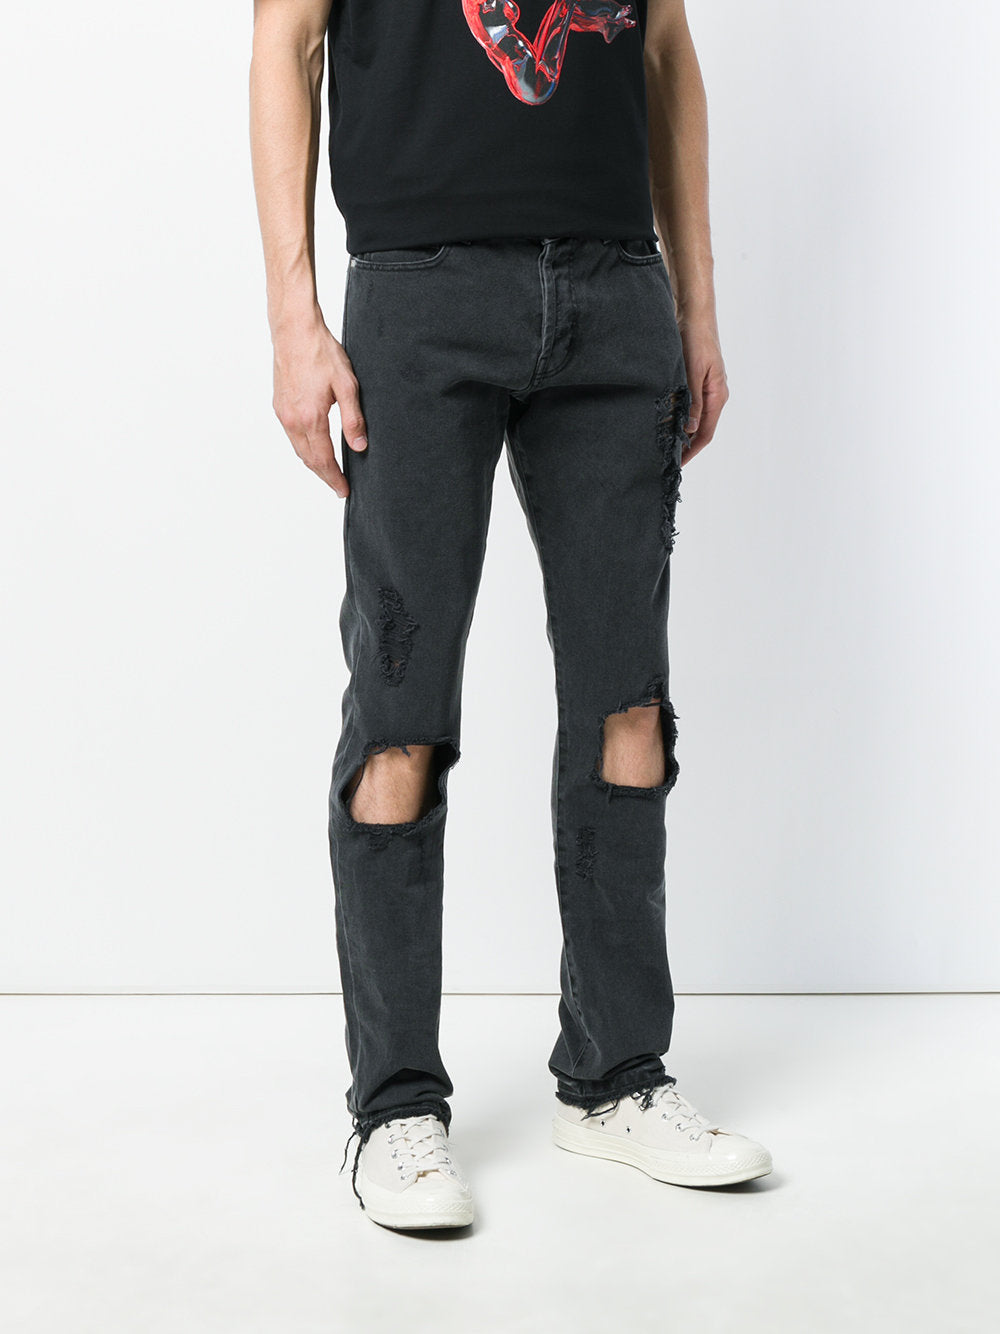 Mens-Moto Dark Grey  Ripped jeans - THE UNIQUE FIT